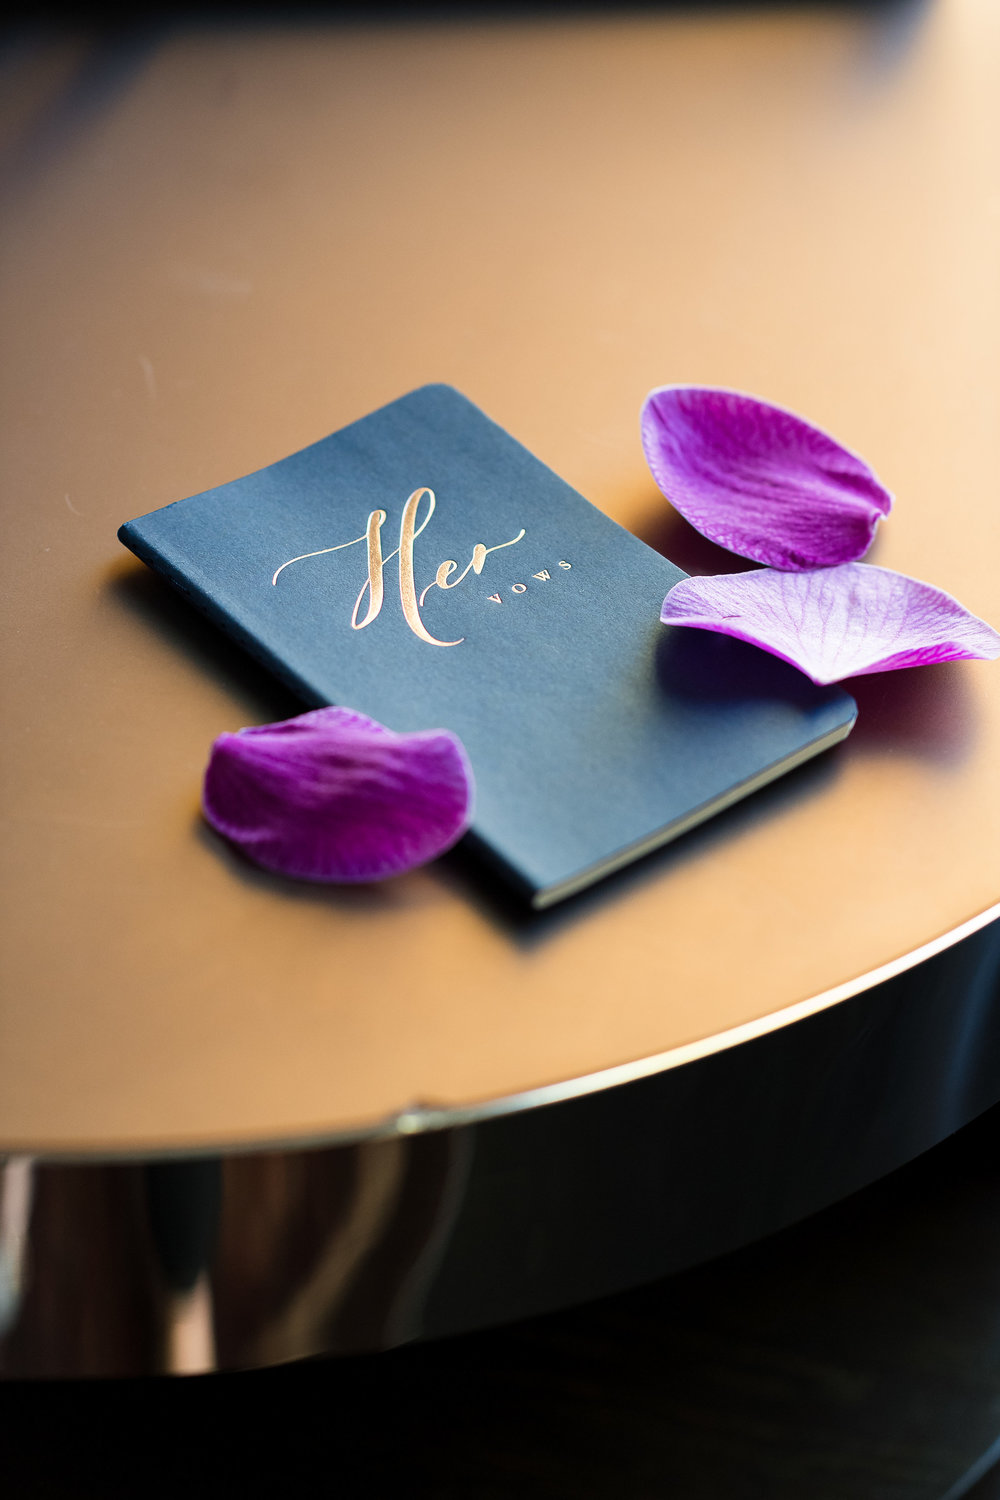 Vow Books.  Wedding Planner:  Andrea Eppolito Events  |   Photography  Brian Leahy   |  Videography  HOO Films   |  Venue & Catering:  Mandarin Oriental  / Waldorf Astoria |  Floral & Decor:  Destinations by Design    |  Lighting:  LED Unplugged  |  Music:  DJ Breeze II   |  Hair & Make Up:  Amelia C & Co